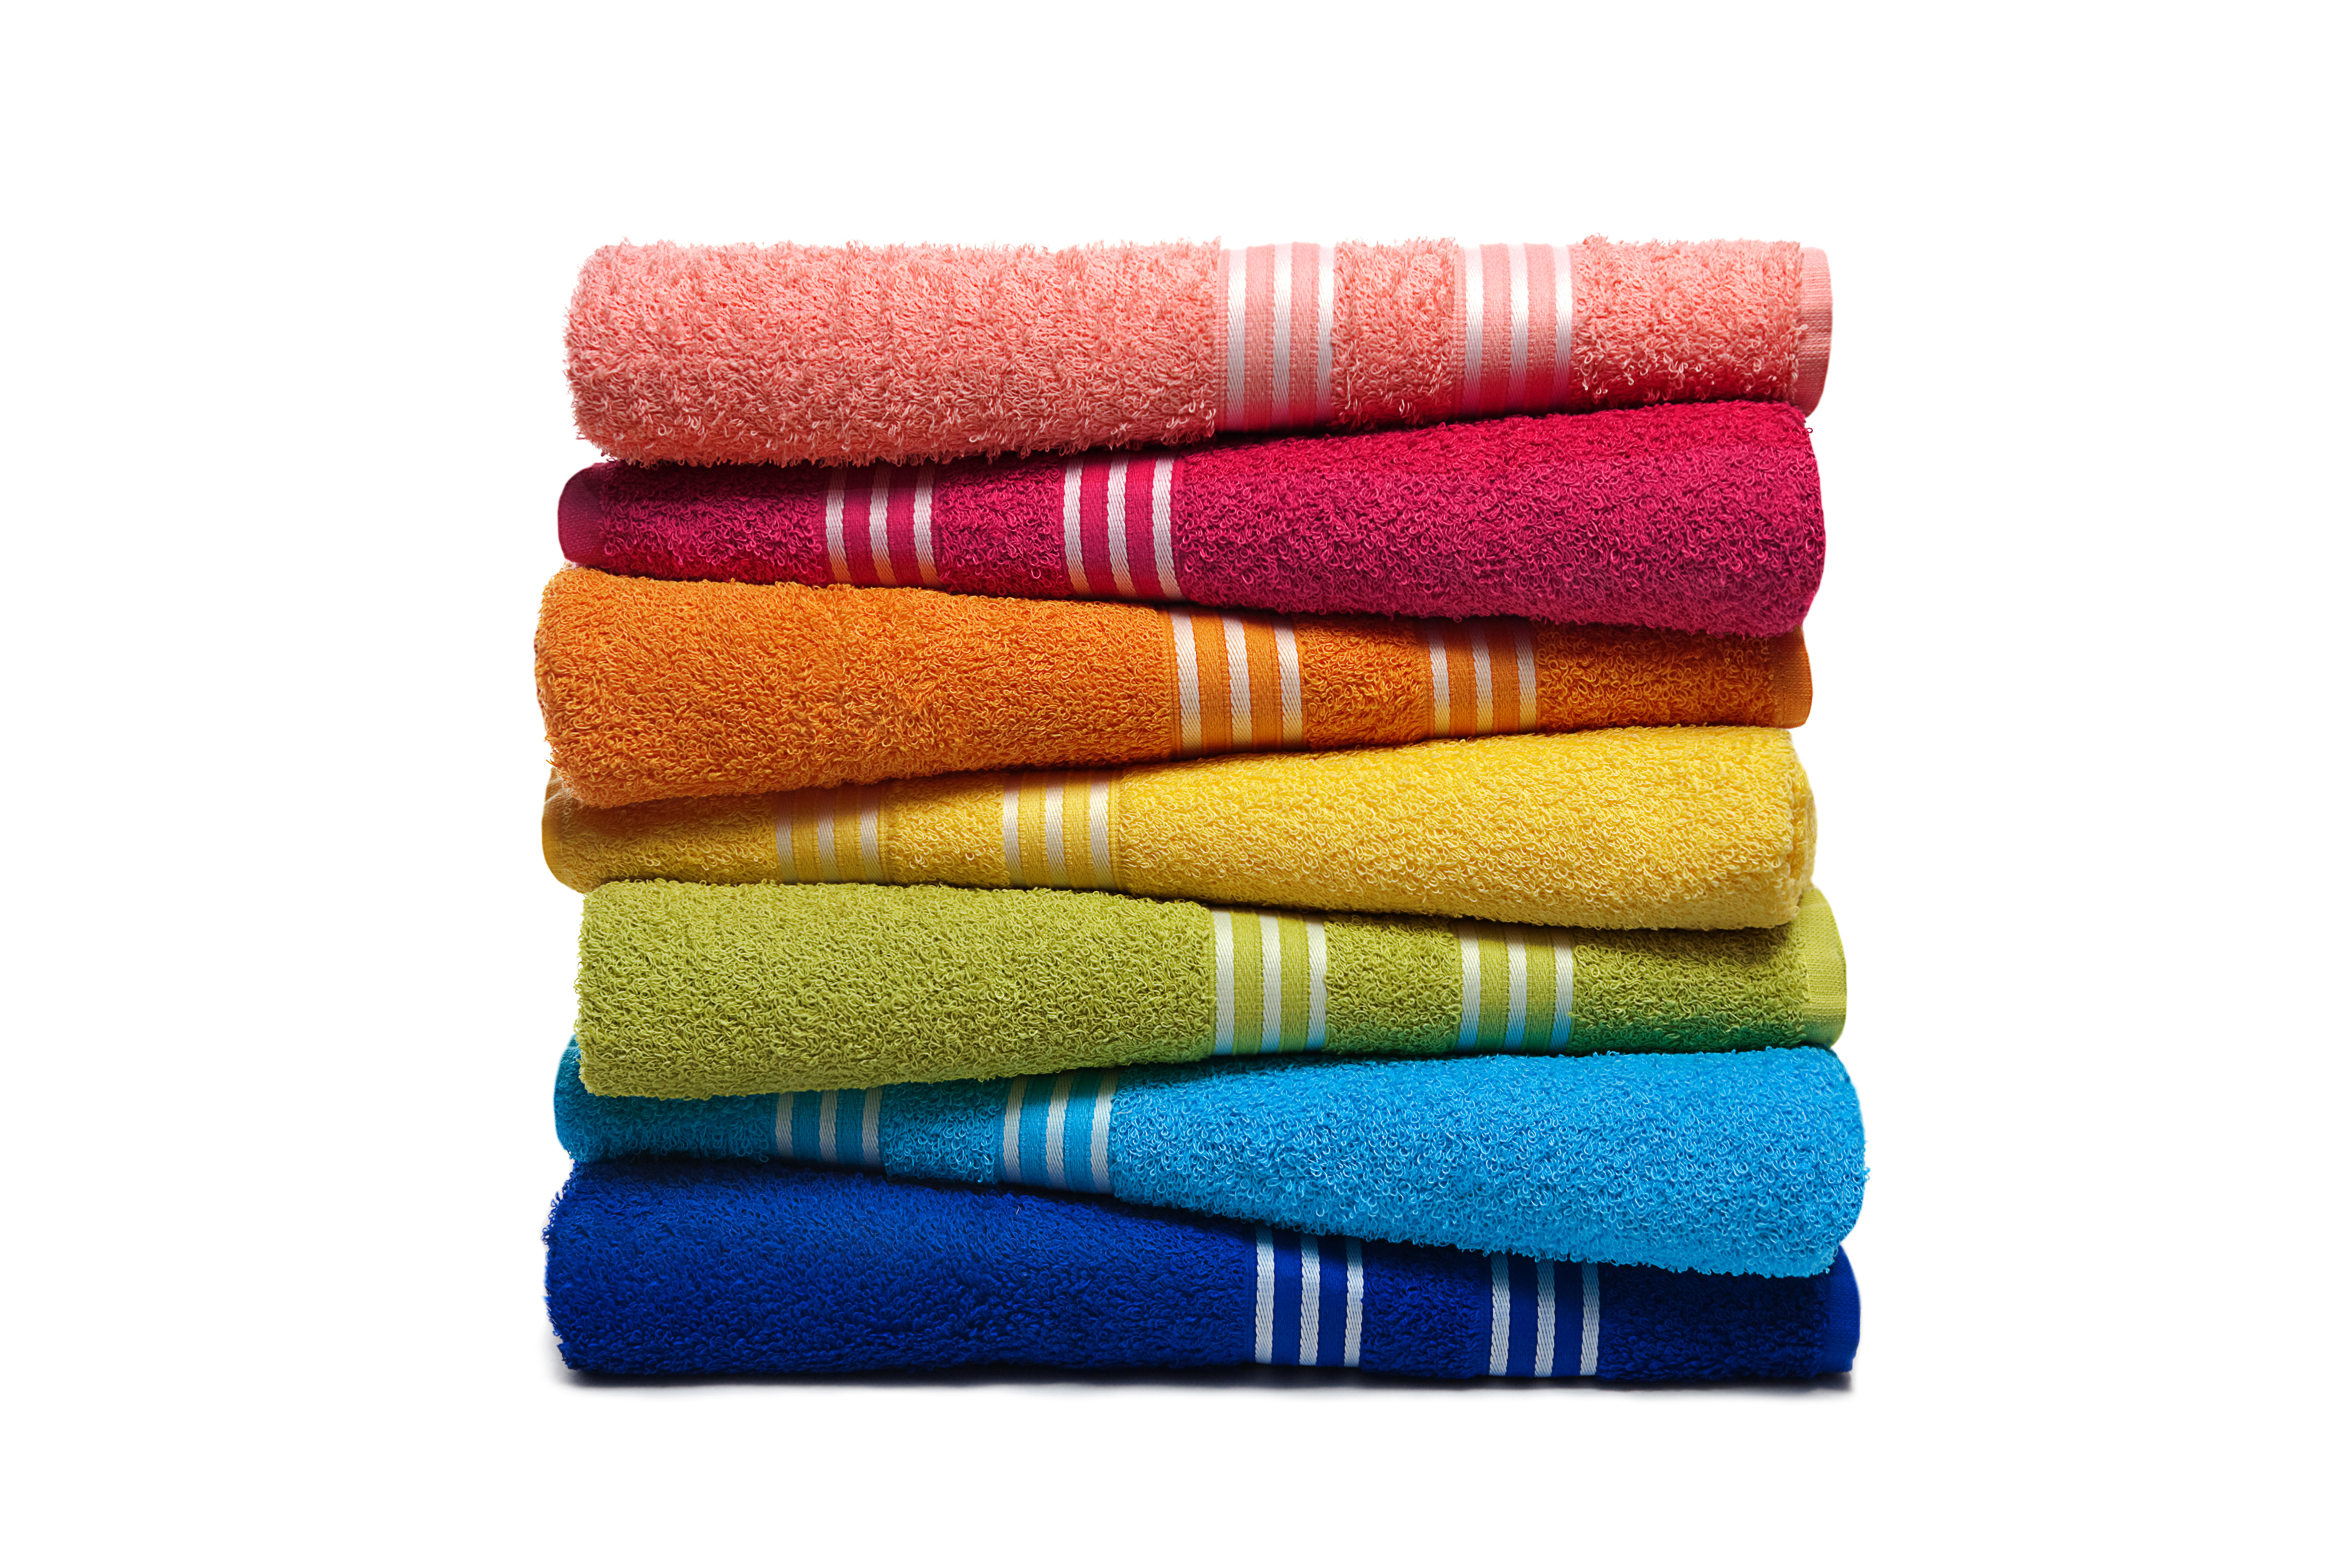 Towel with woven borders.